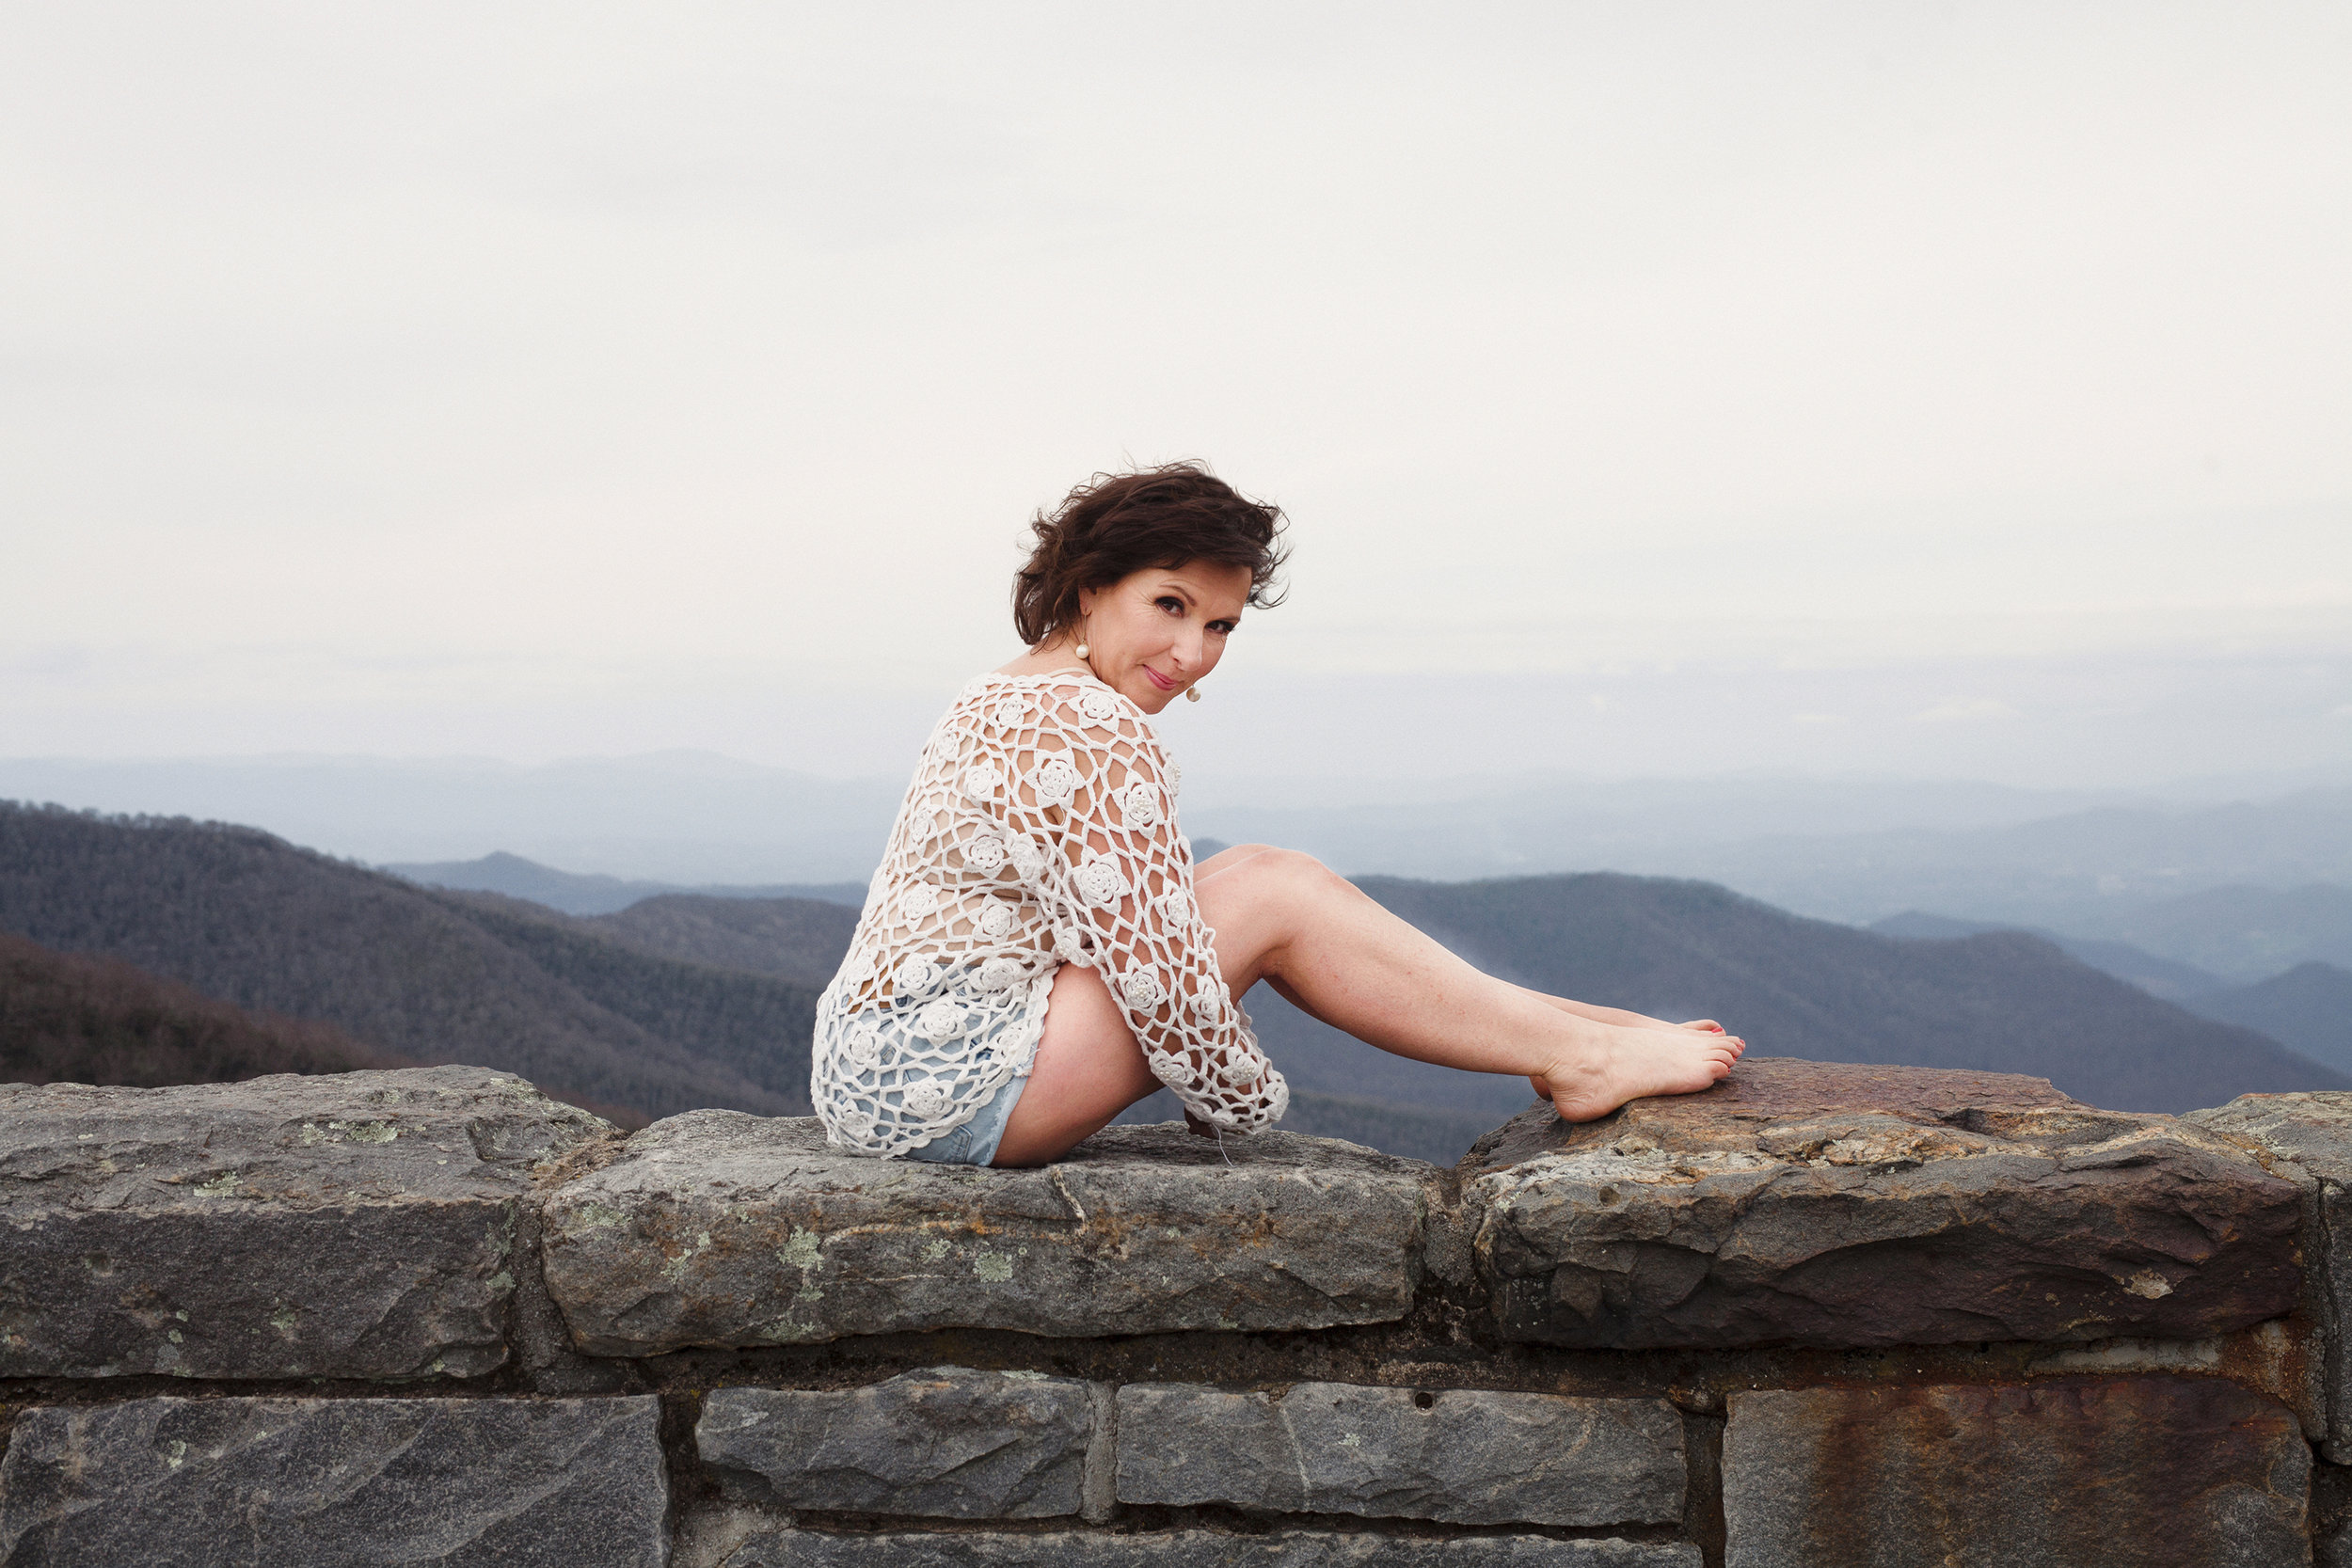 Wnc - Asheville - business coach - life coach - happiness coach - professional photo shoot